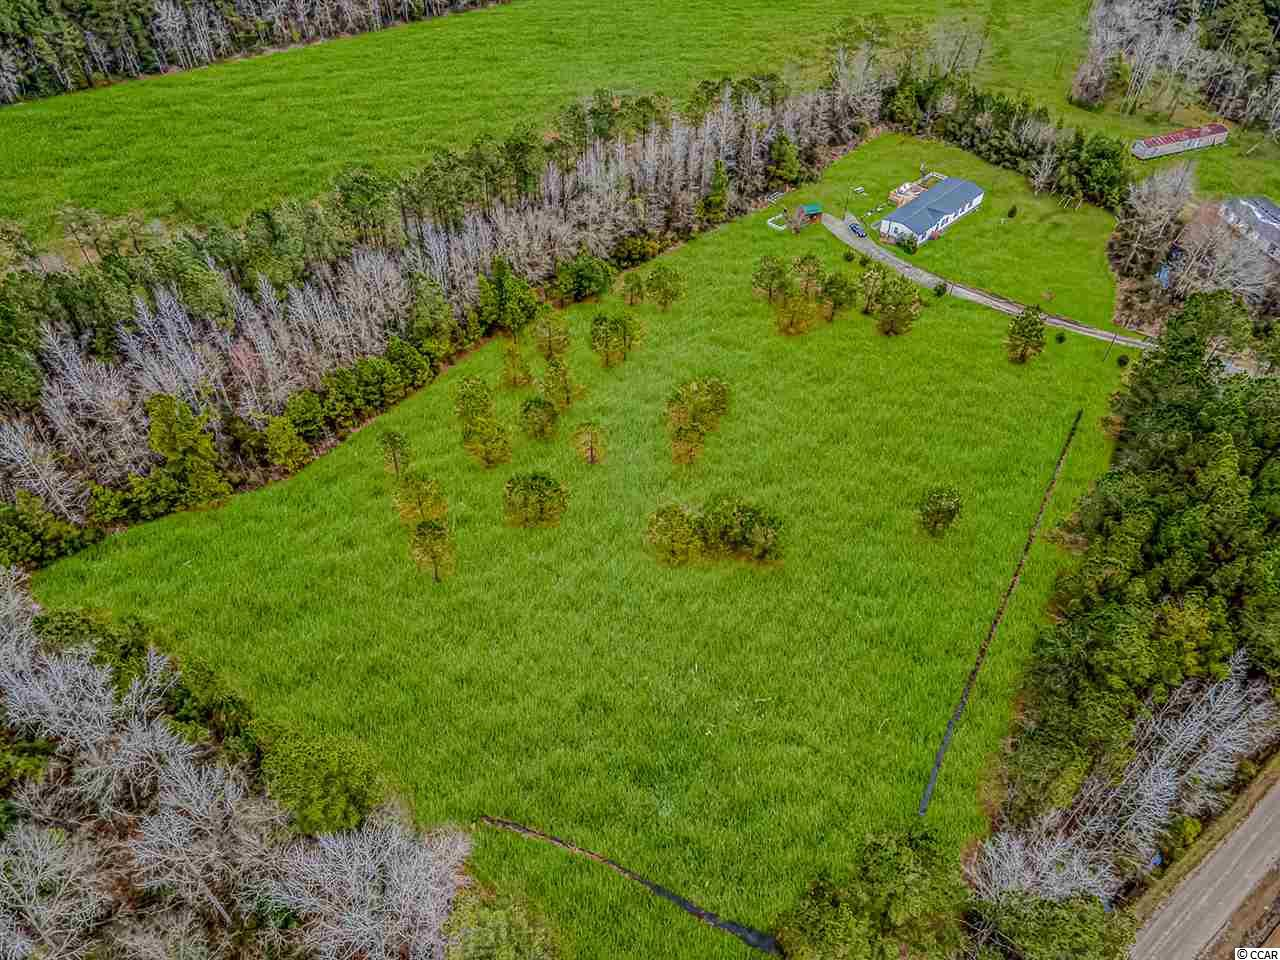 If you've been looking for your own slice of heaven that is already cleared and ready to go, look no further. This land has been zoned for 5 homes or you can just keep it all to yourself. Water and electric have been ran to the site so just pull your permits and enjoy your private 6 acres. The land is located conveniently just south of downtown Conway. So although you're out in a rural area with no close neighbors, you can still be downtown in minutes and you're not far out from the beach either. It is rare to find acreage in such a great location. You won't find cleared parcels this size with utilities ran to them already. Drive by anytime and check it out before it's gone!!!